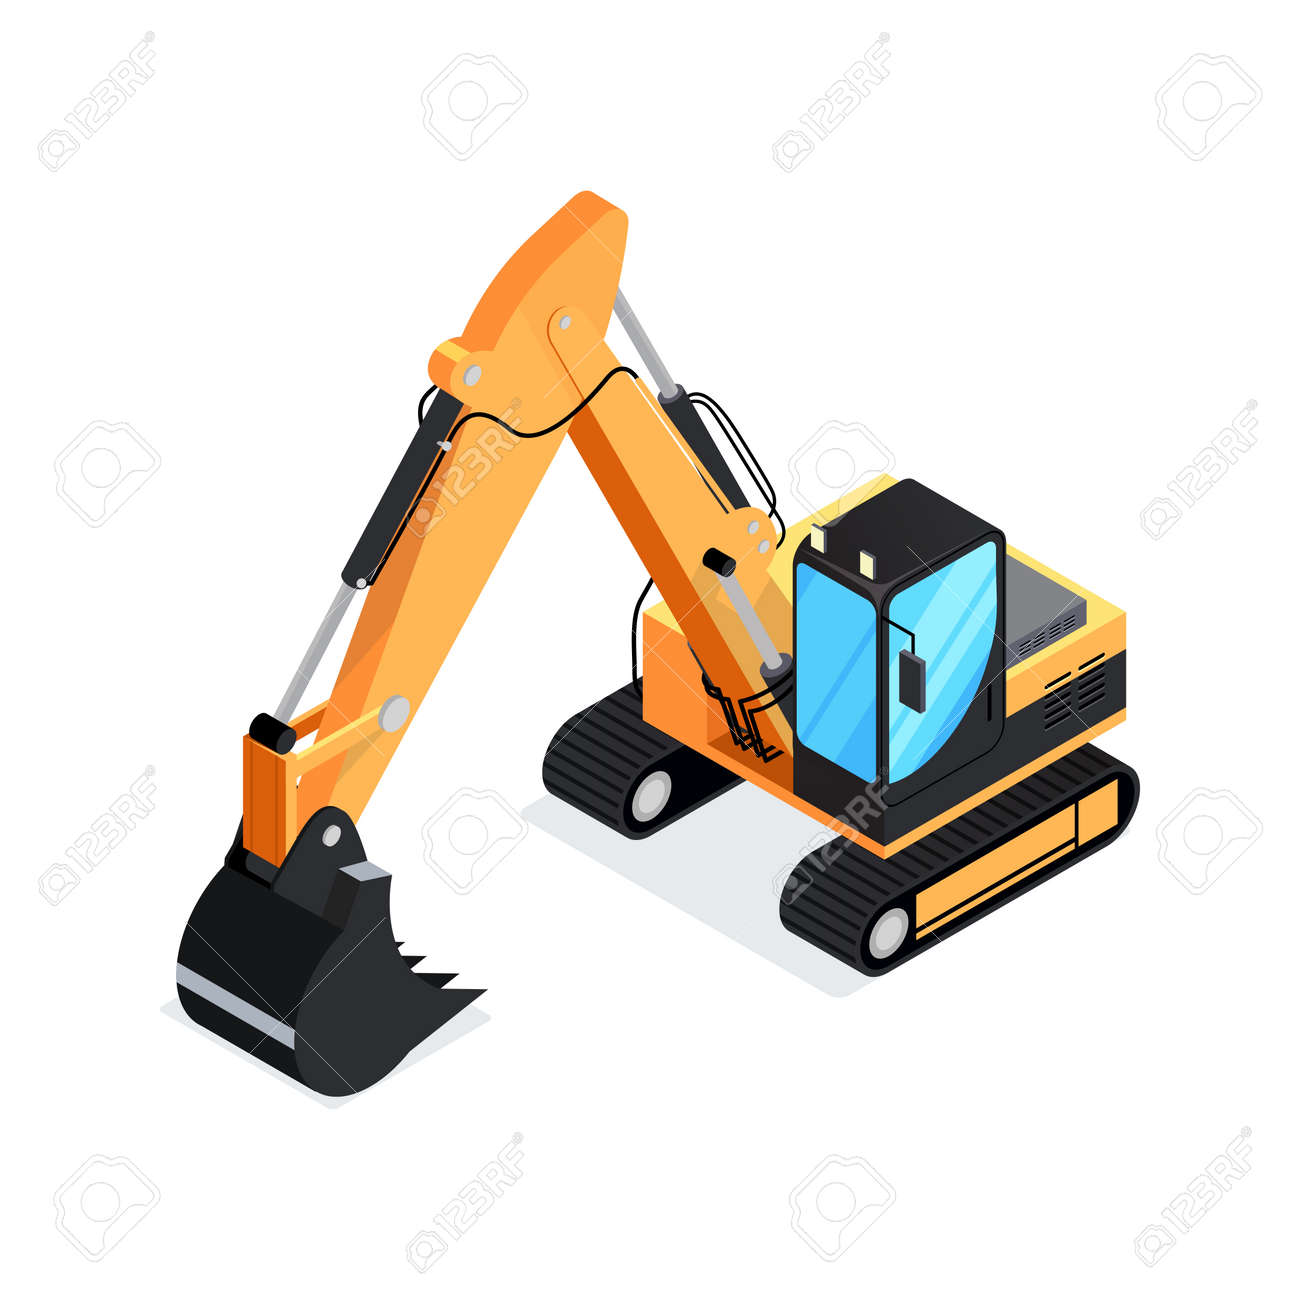 Isometric Excavator Isolated On White Background 3d Icon Construction Digger Special Machinery